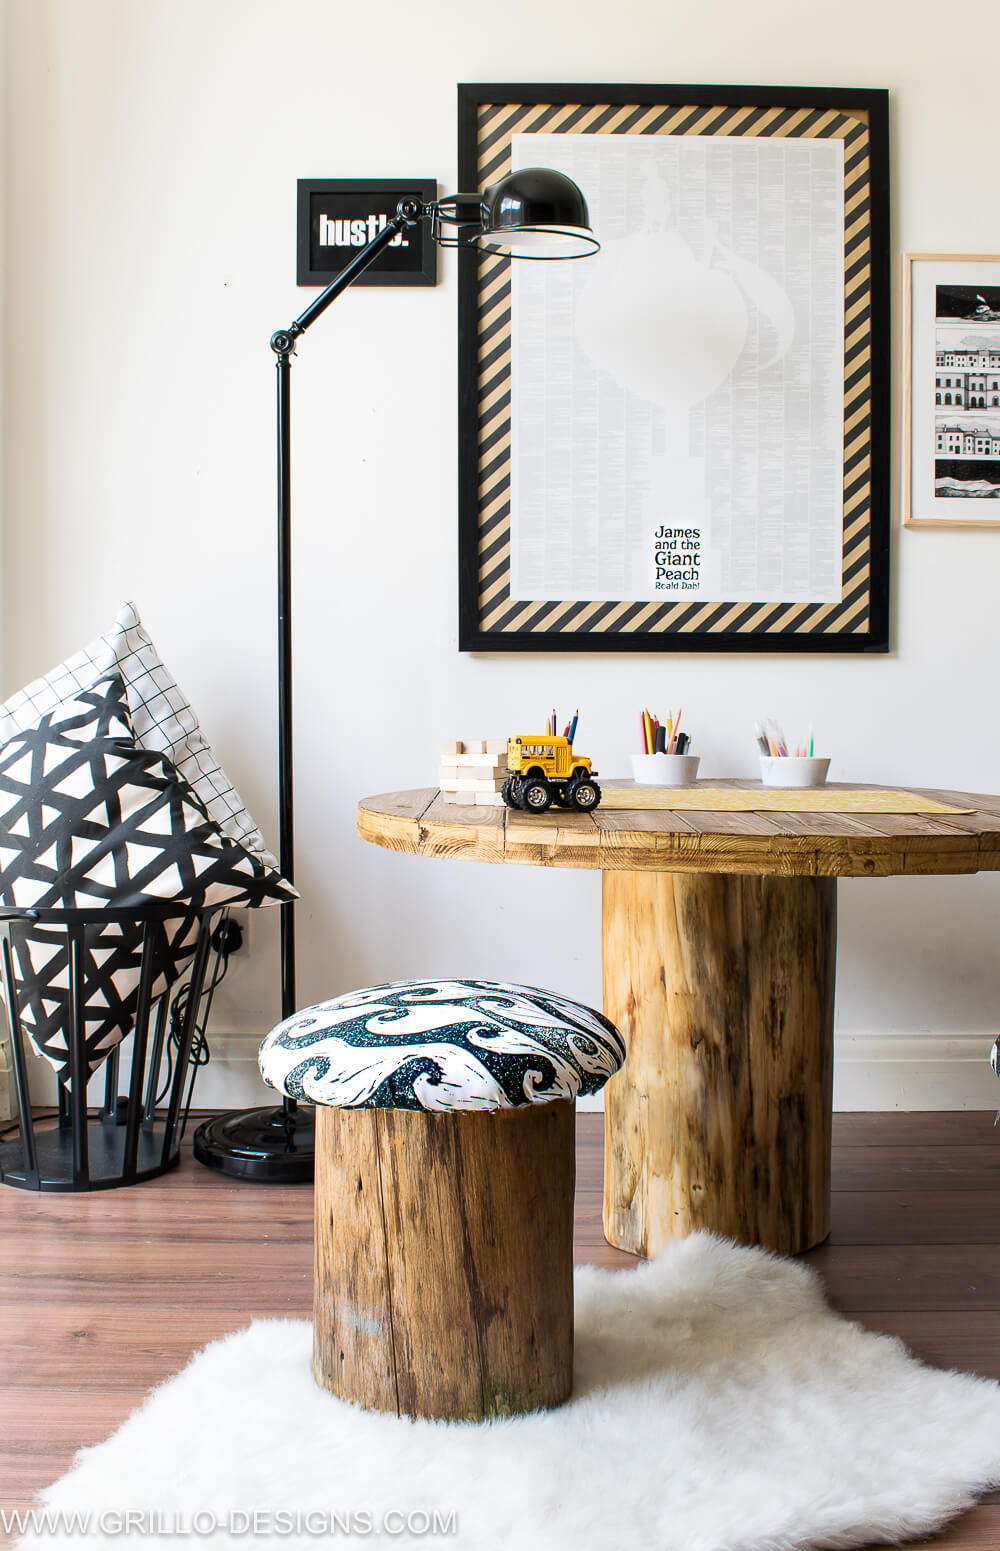 Wooden tree trunk table for kids / grillo designs